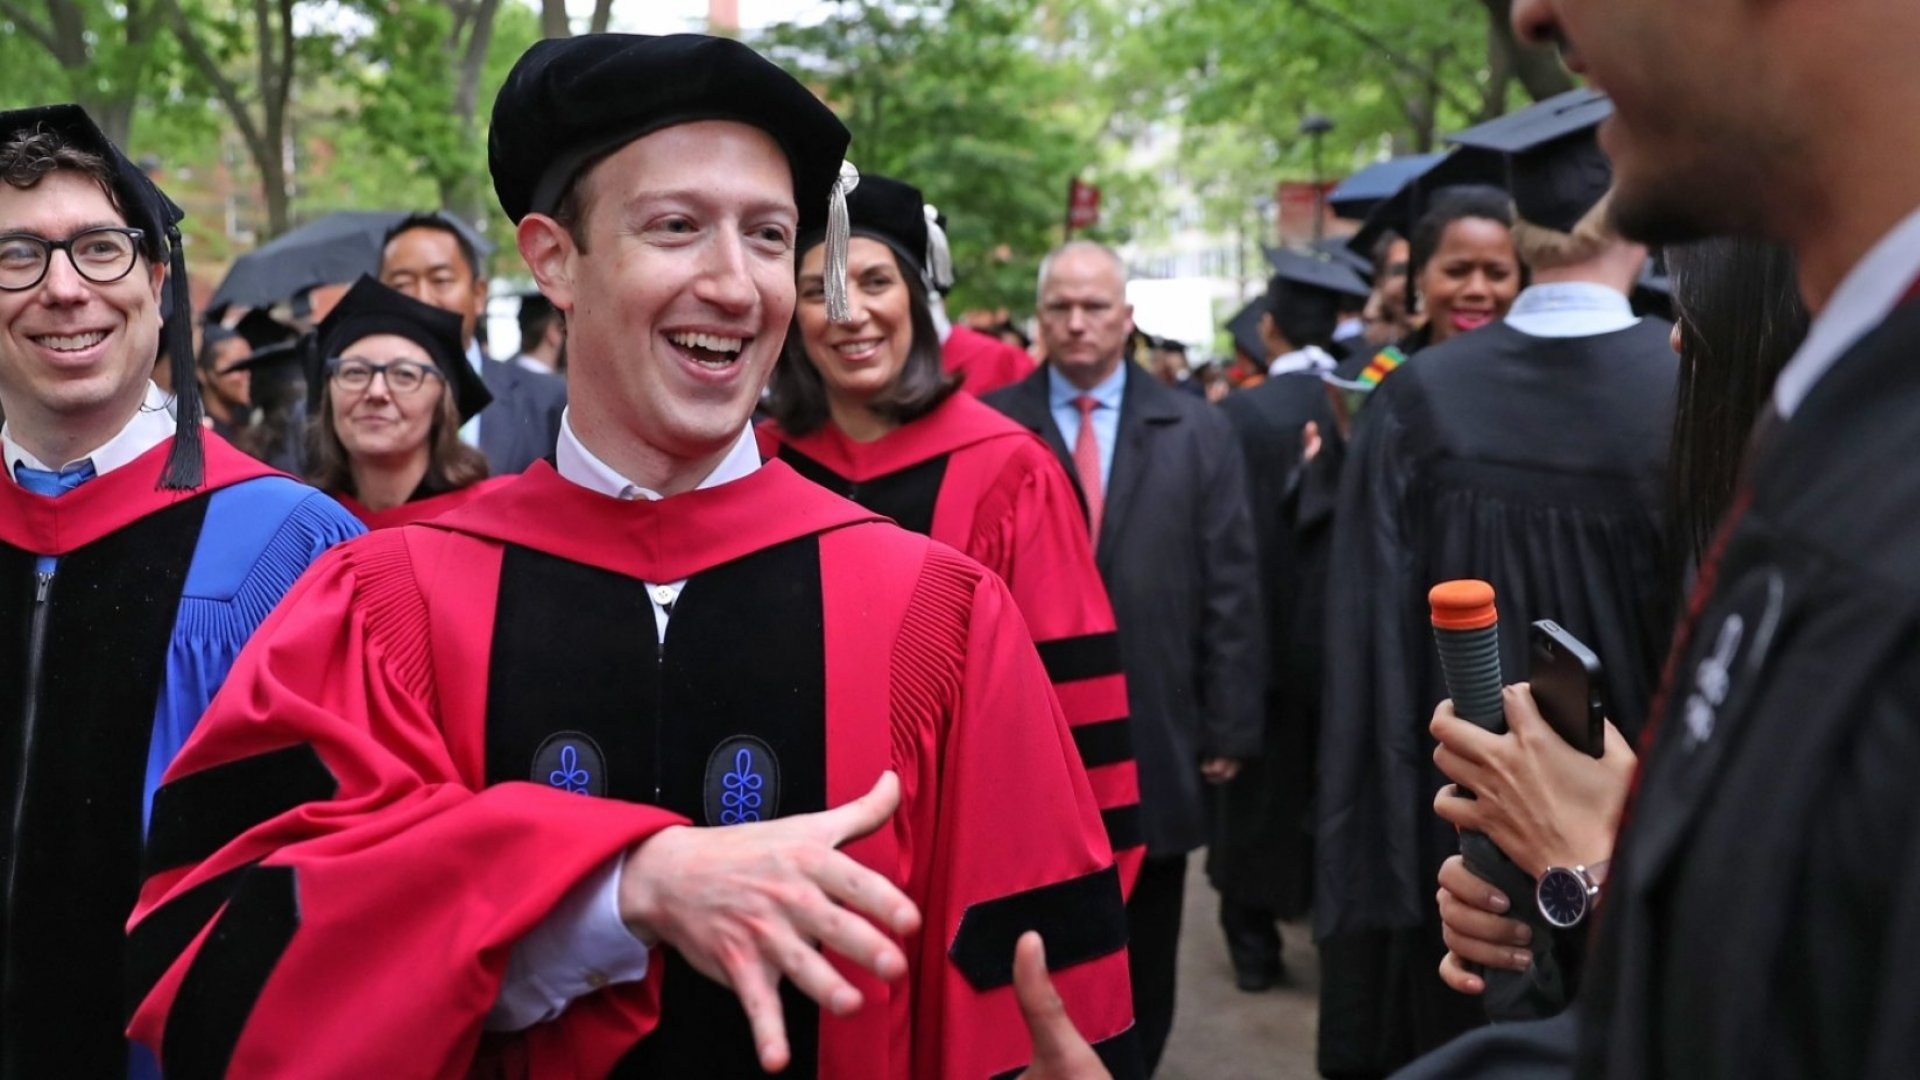 Mark Zuckerberg, Harvard dropout and CEO of Facebook, a company worth nearly $400 billion, shakes hands with graduates at the Harvard University commencement in Cambridge, Massachusetts on May 25, 2017.